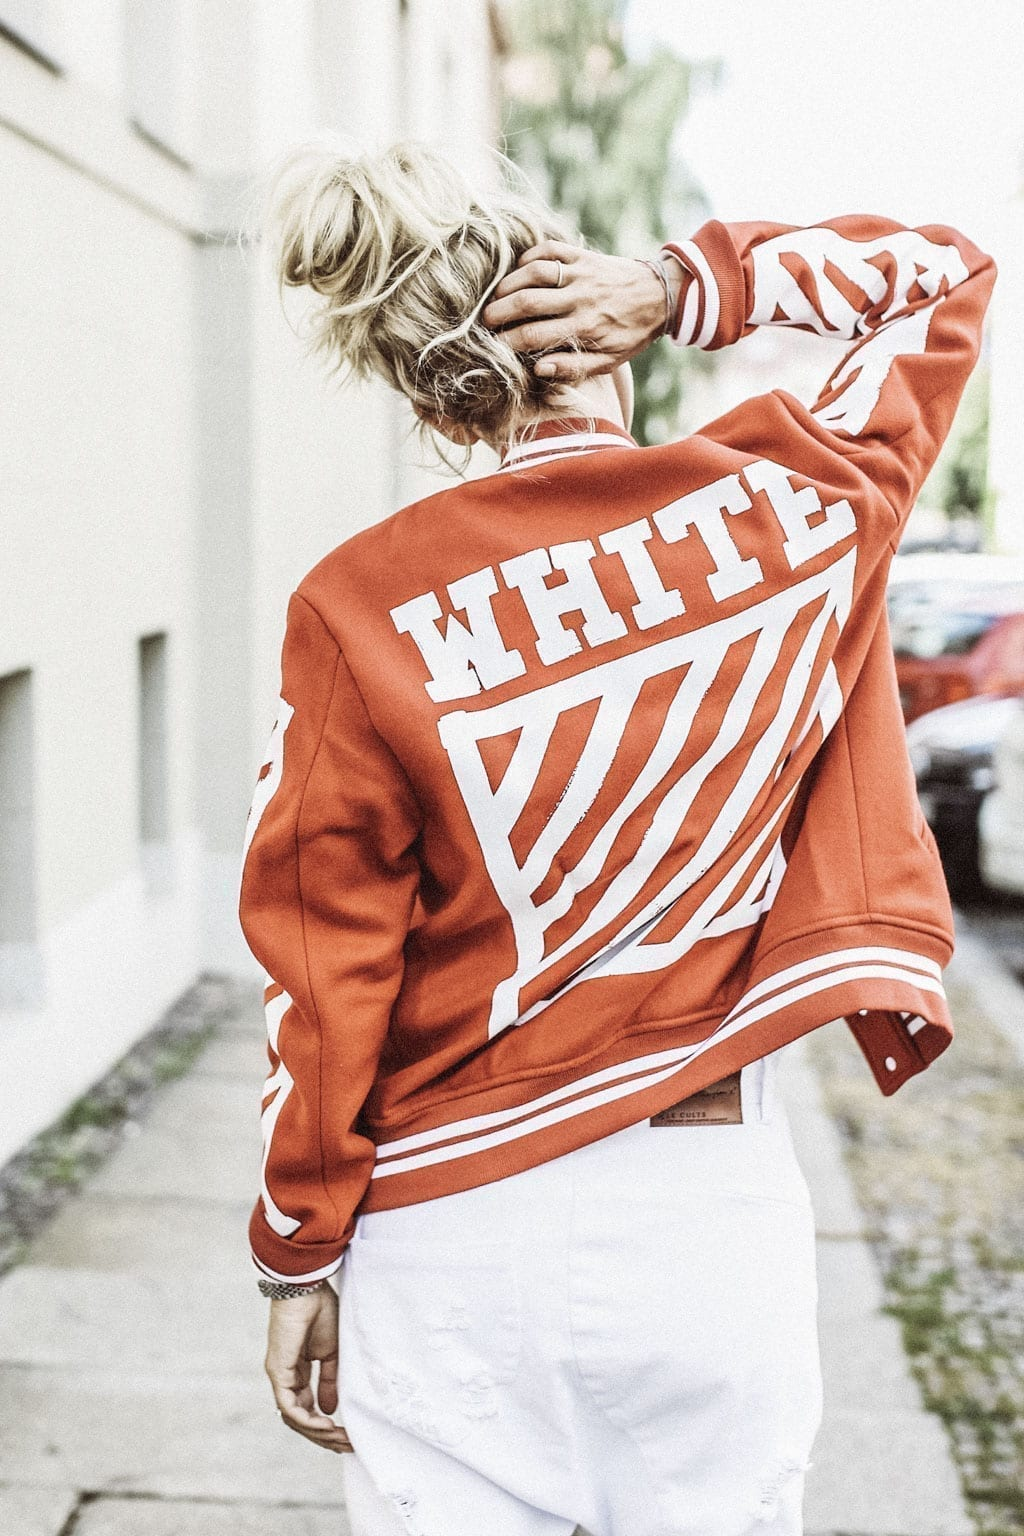 Constantly-K-karin-kaswurm-white-red-rieger-jacket-salzburg-fashion-street-style-8404